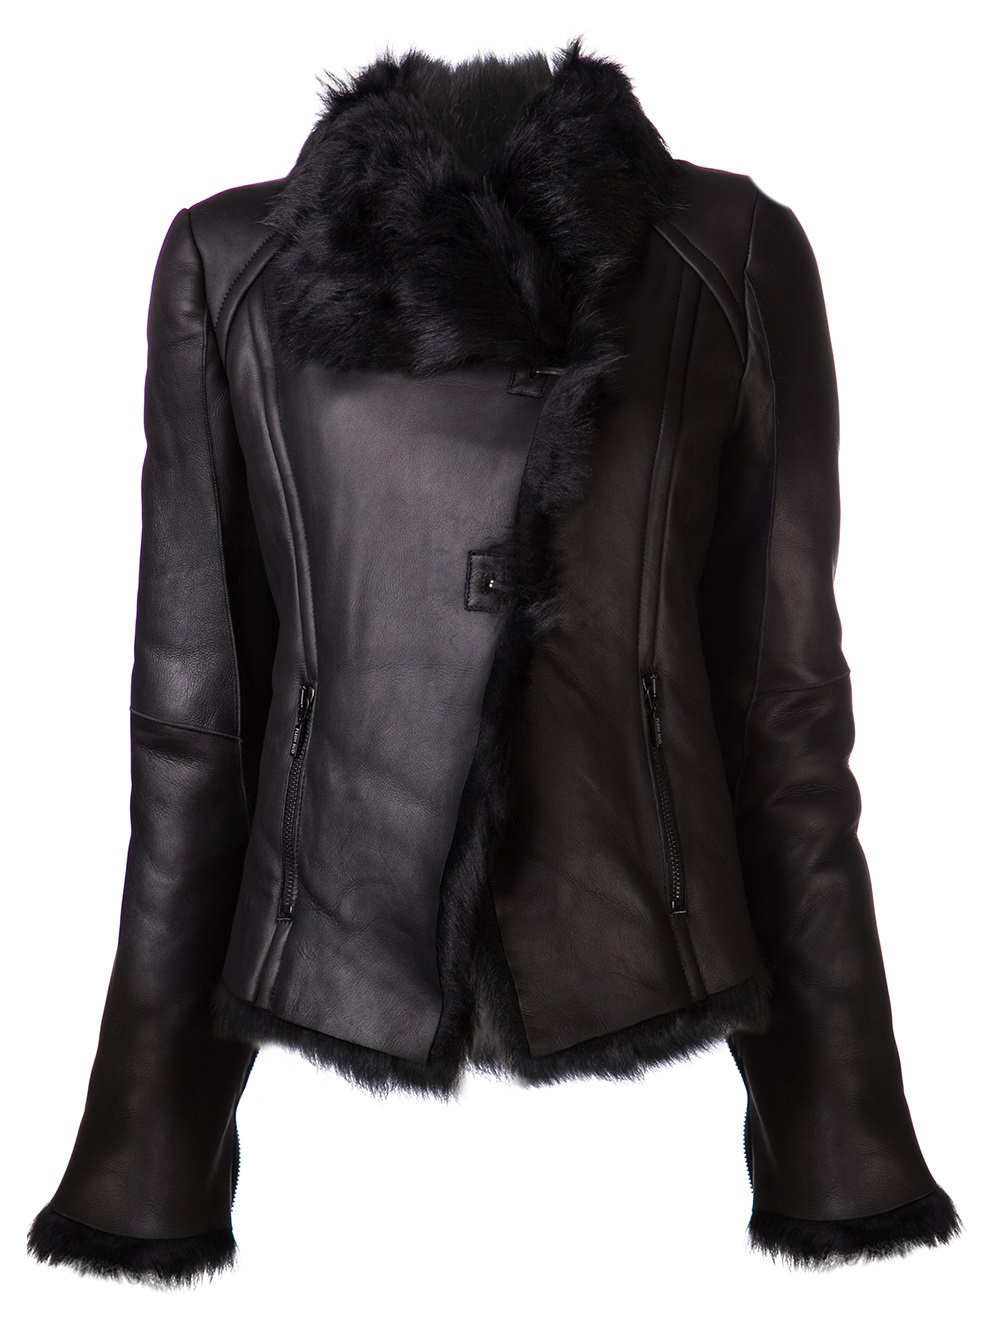 Plein sud Fur Collar Leather Jacket in Black | Lyst